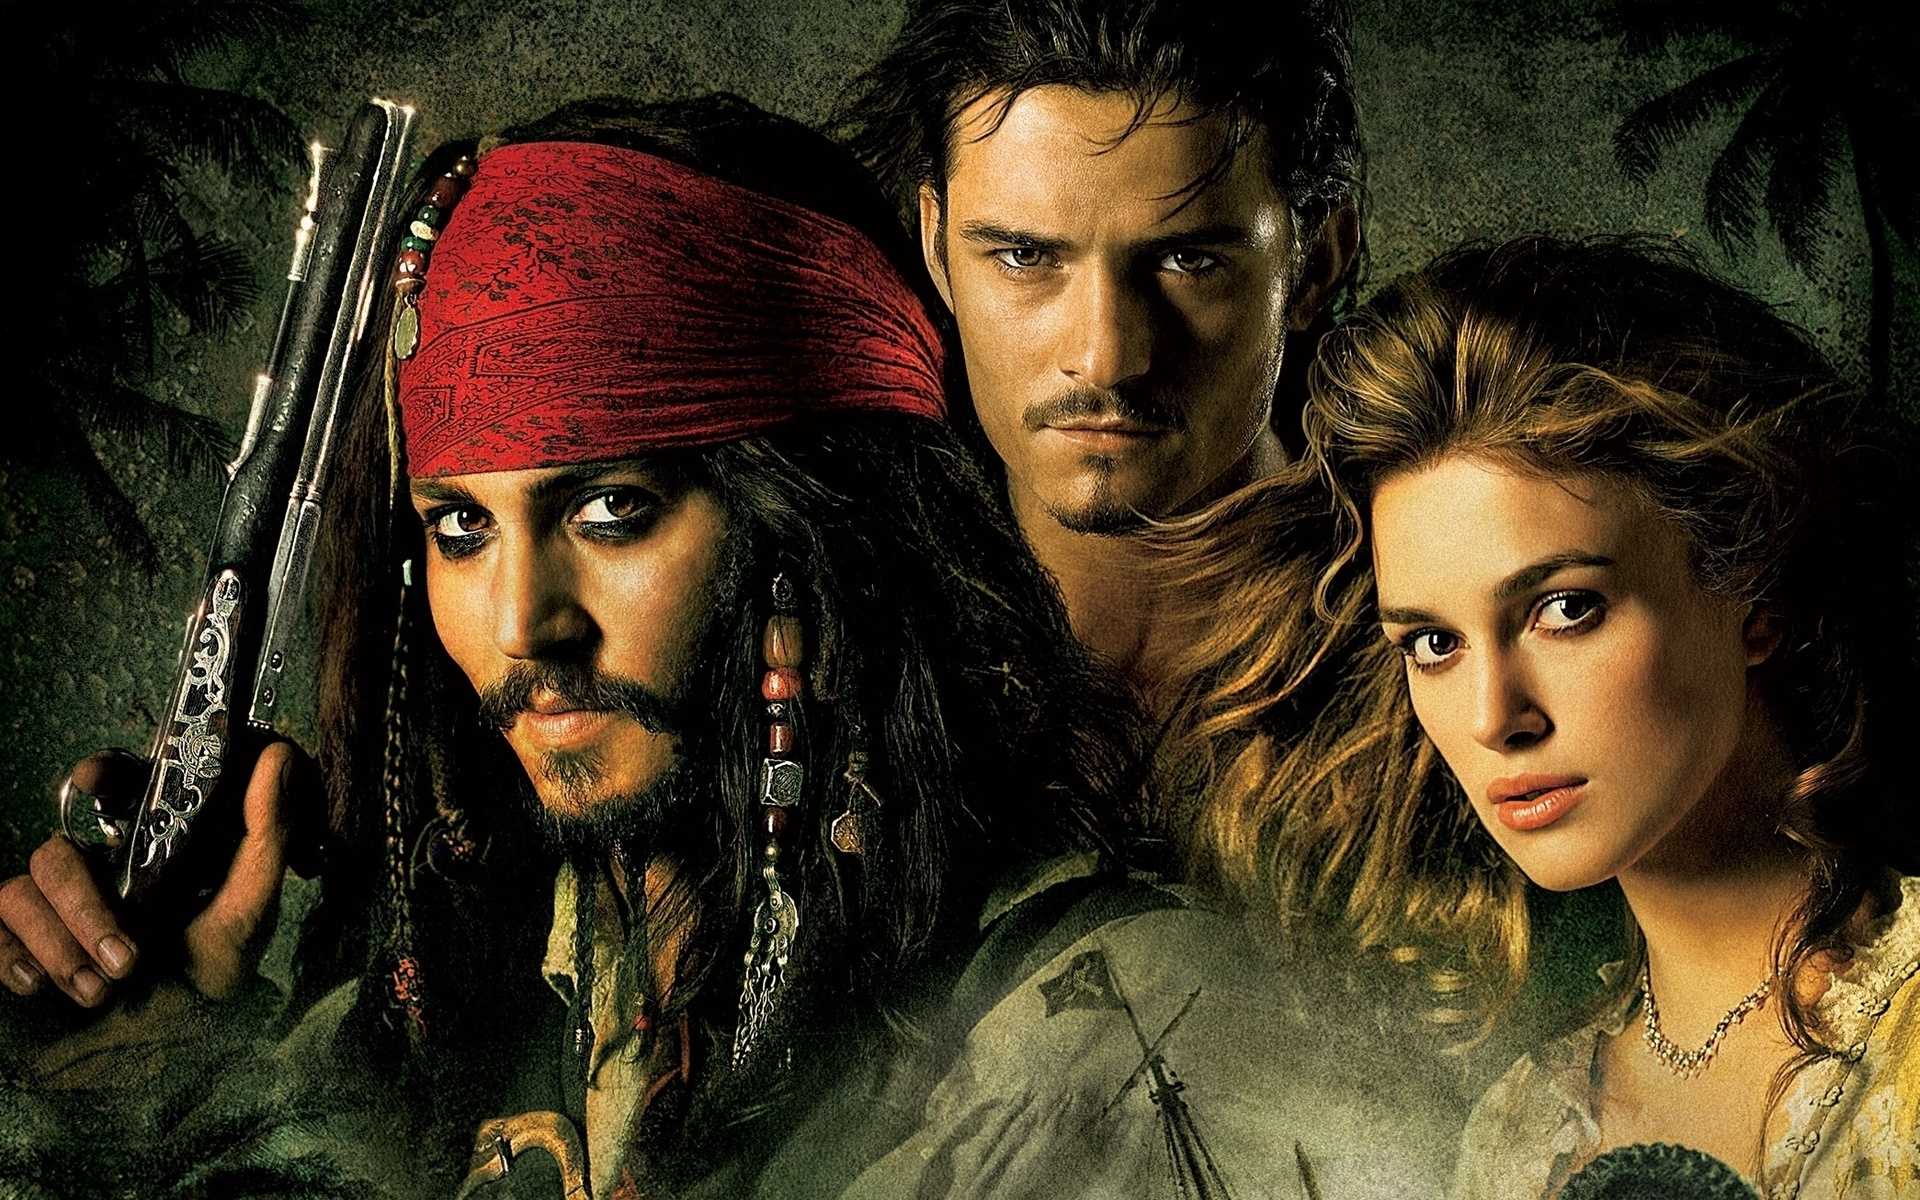 pirates of the carrabean essay Pirates of caribbean essay essays from bookrags provide great ideas for pirates of pirates of caribbean essay caribbean essays and paper topics like essay the most bloodthirsty and terrible pirate ever to sail the caribbean sea was my own great-great-great-great grandfather, denis the.